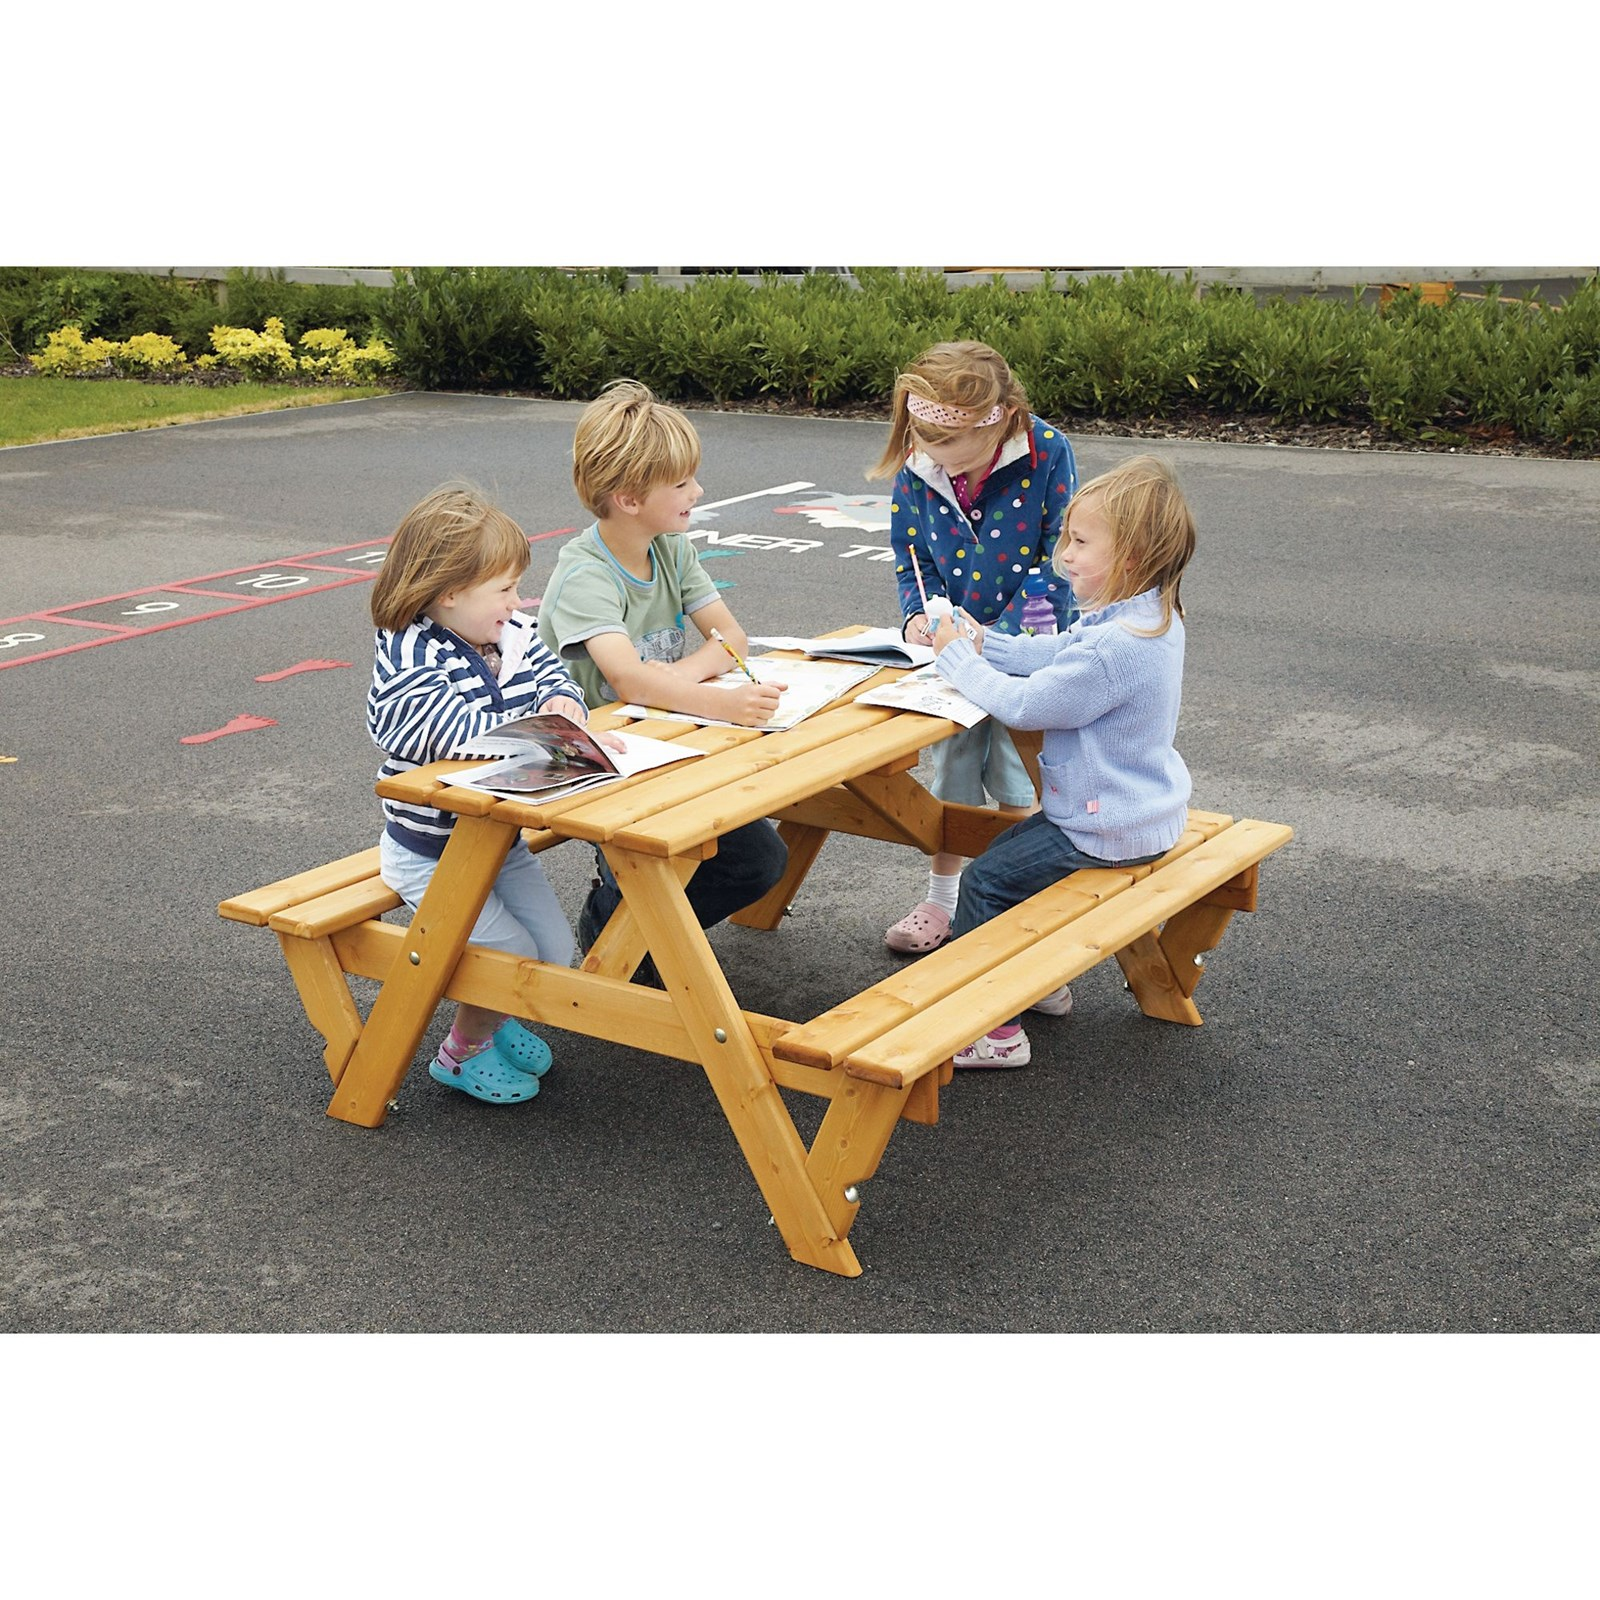 Product GLS Educational Supplies - Picnic table supplies